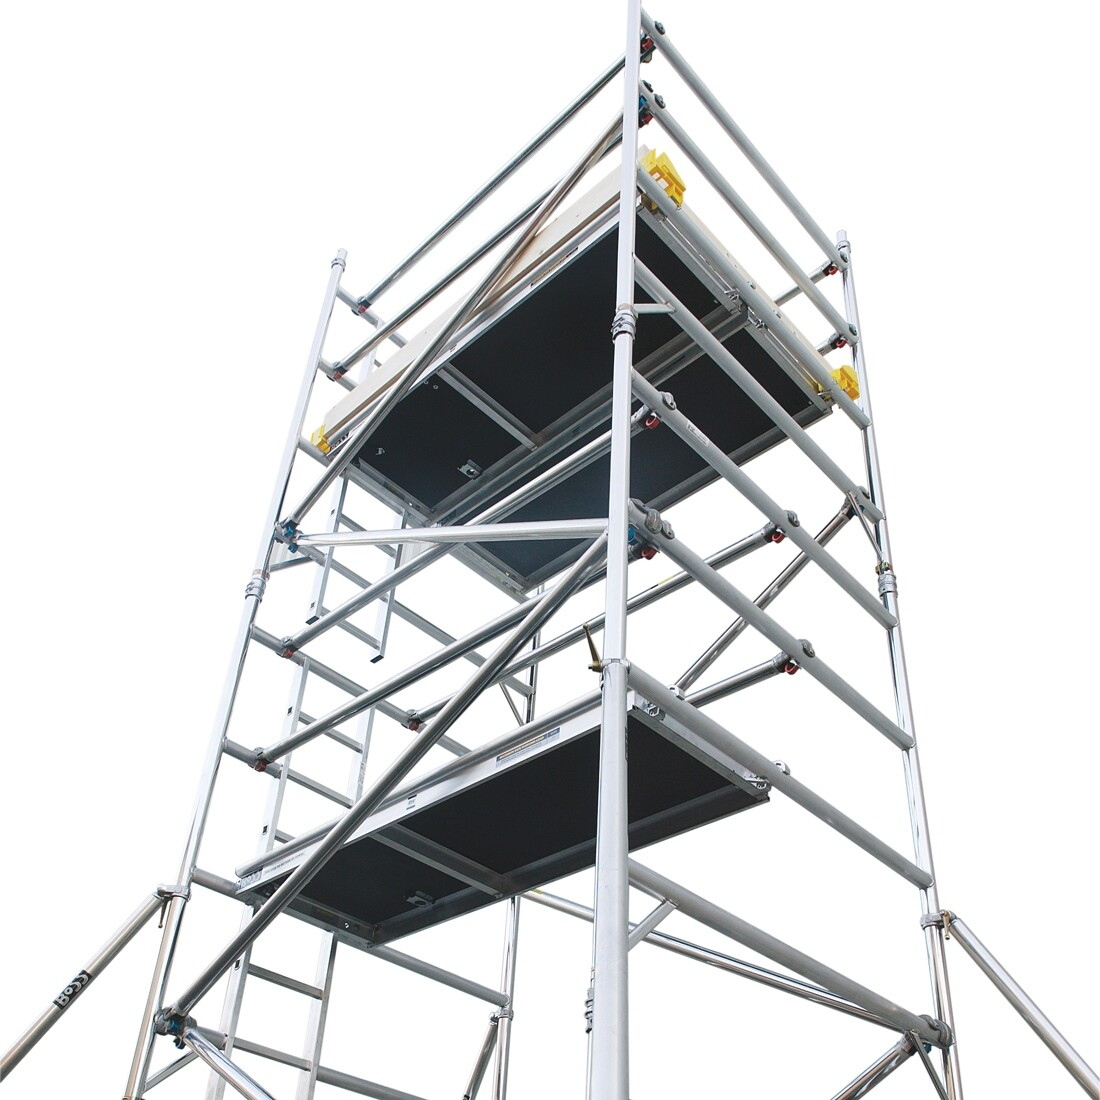 Mobile Tower Double Width - 1.4m wide x 1.8m long x 6.4m high